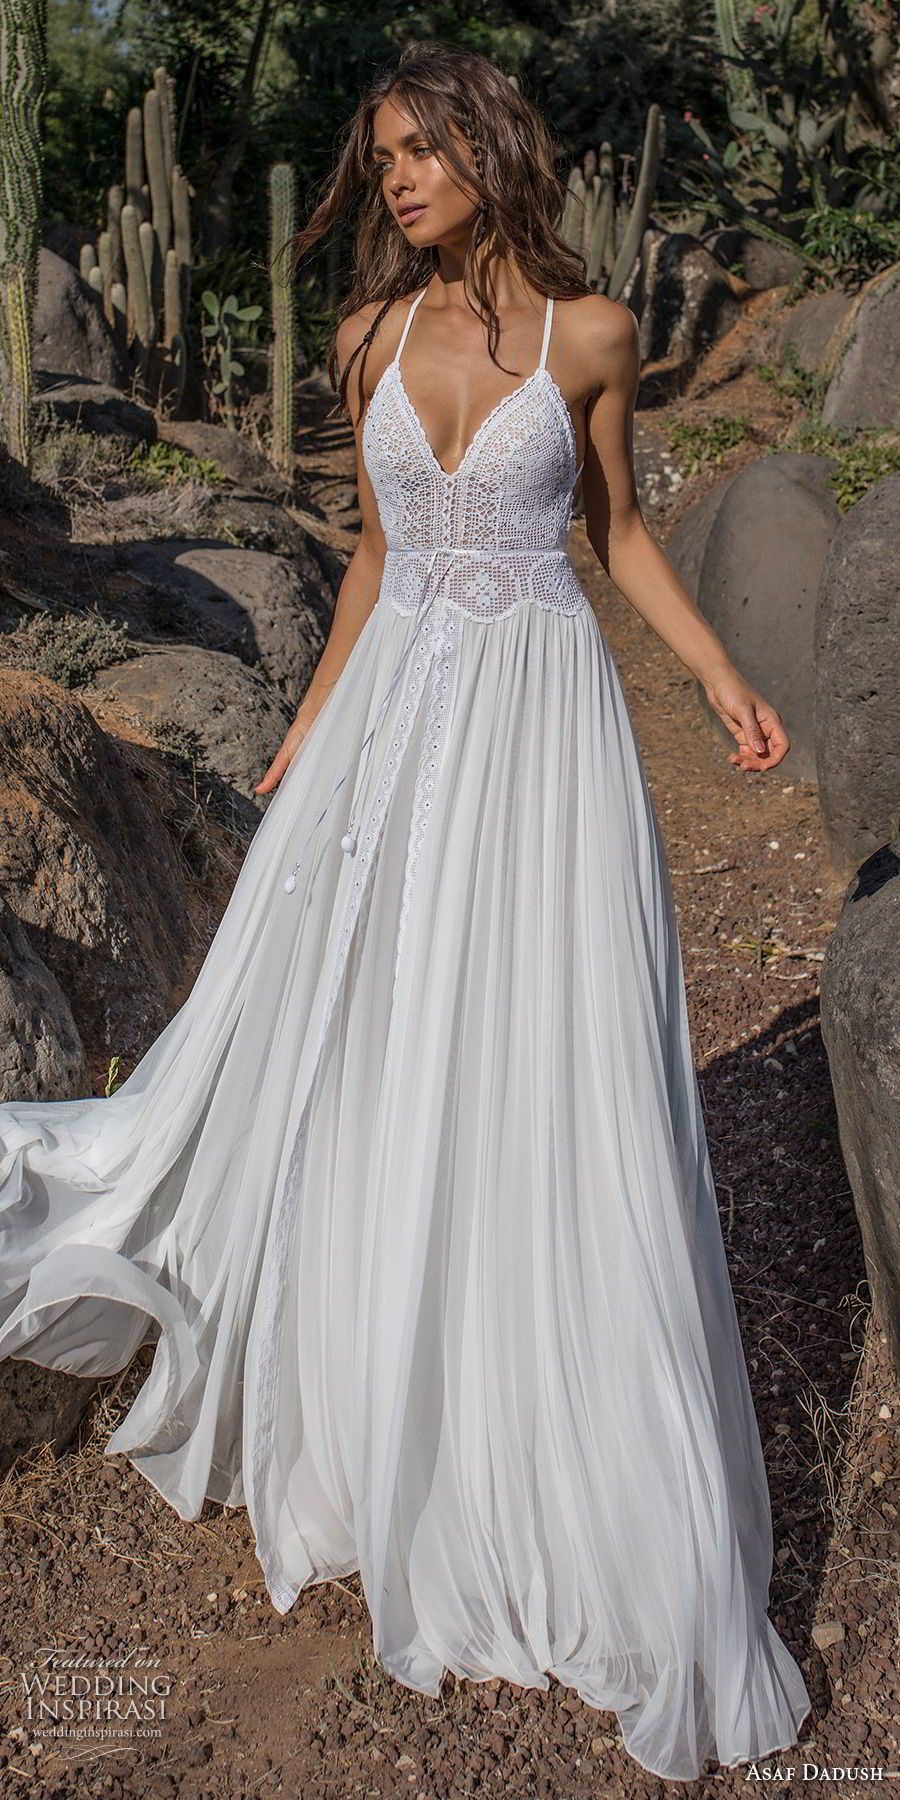 asaf dadush 2018 bridal sleeveless thin strap sweetheart neckline heavily  embellished bodice romantic bohemian soft a line wedding dress open strap  back ... 7f2dc0e9332e